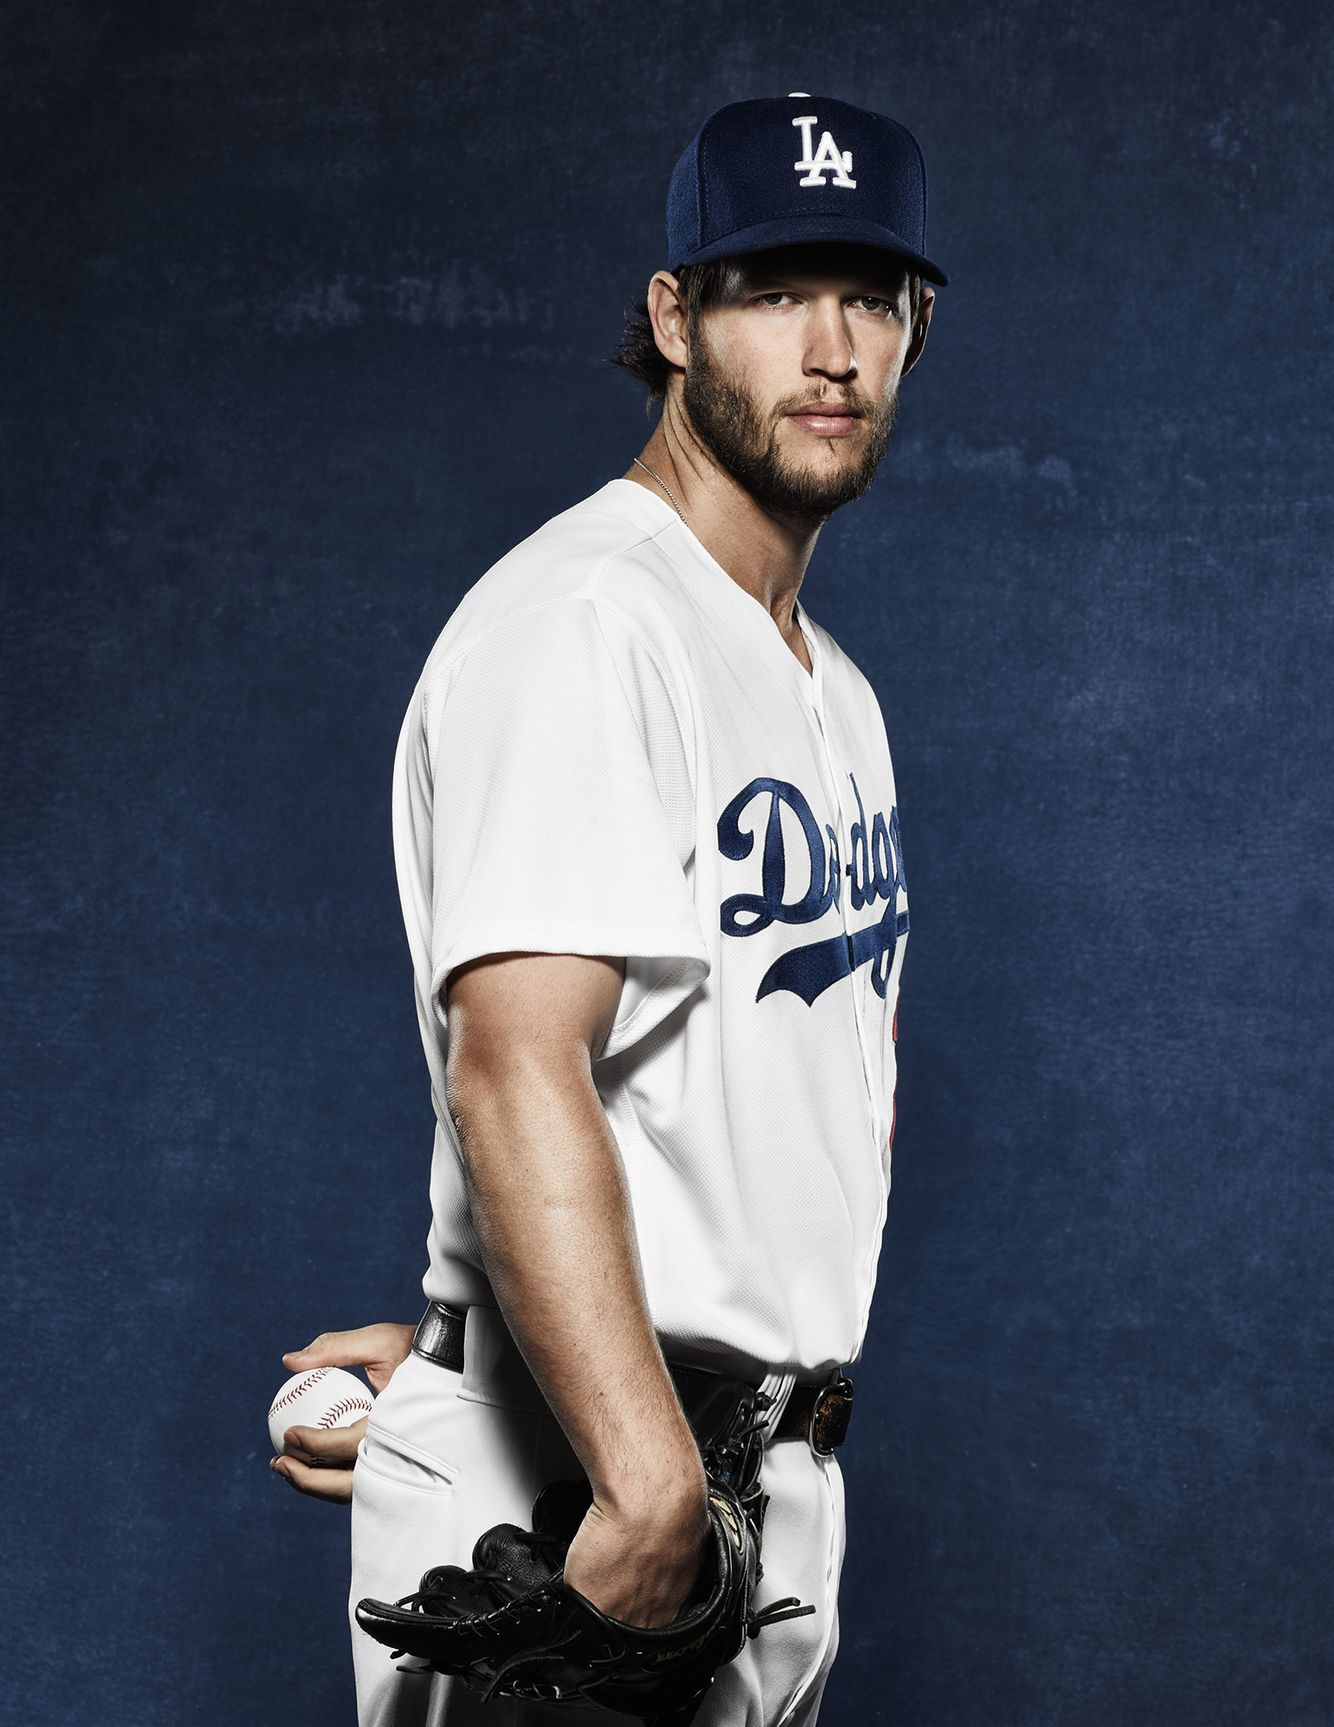 CLAYTON KERSHAW • LA DODGERS 2017